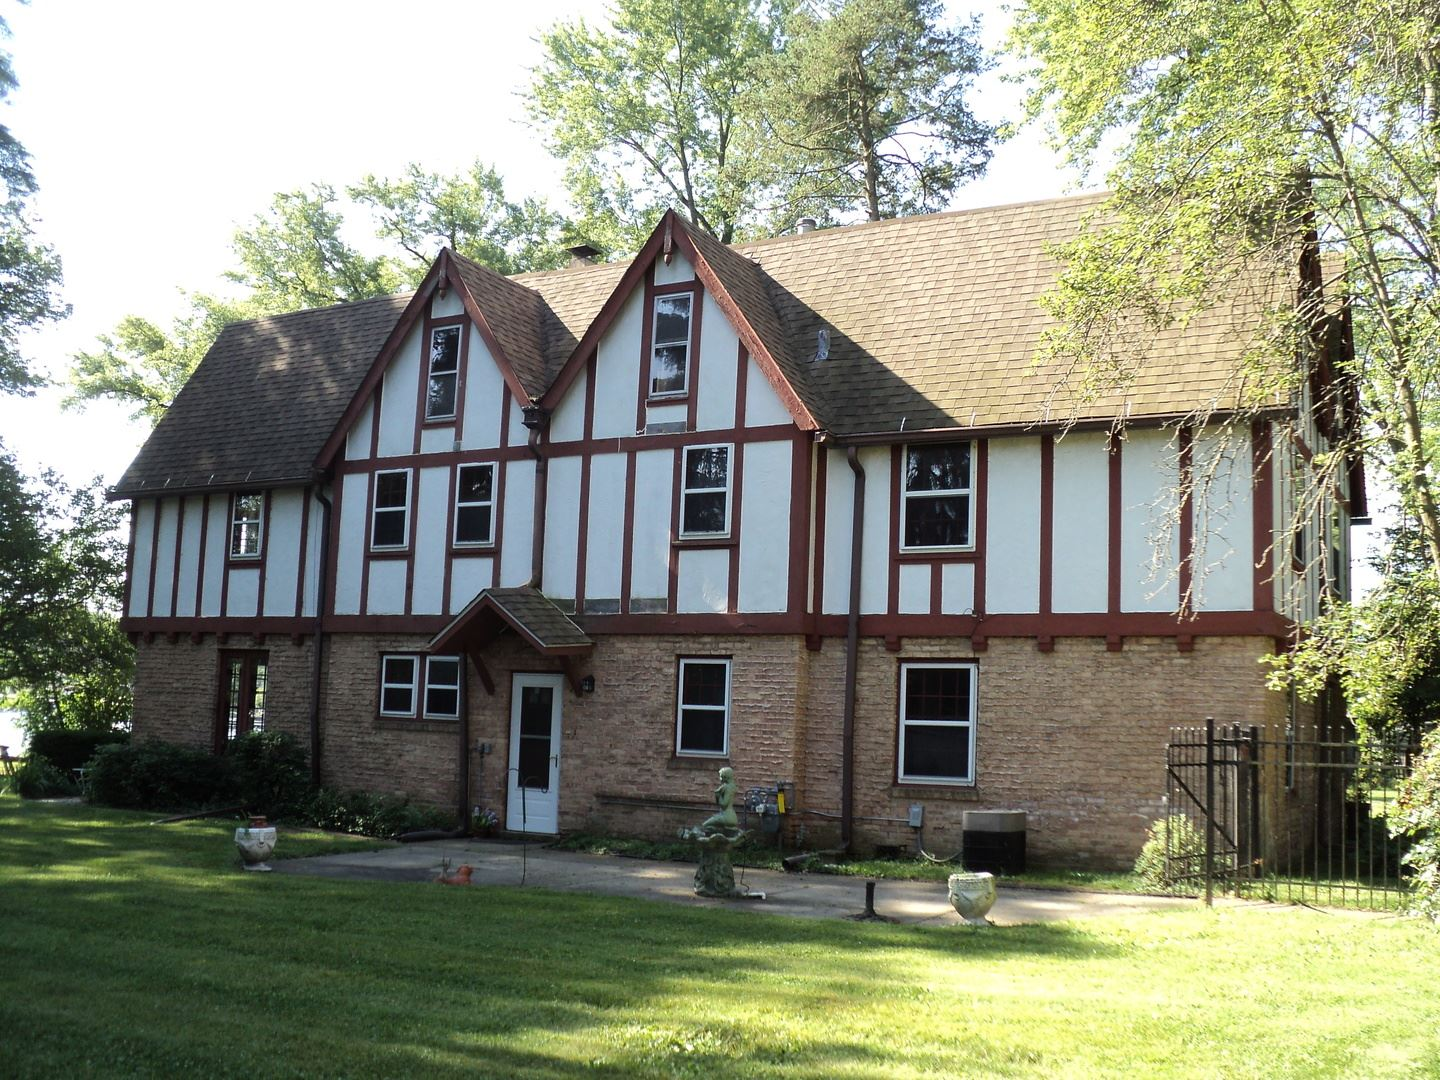 402 Country Club Drive, McHenry, IL 60050 - #: 10643335